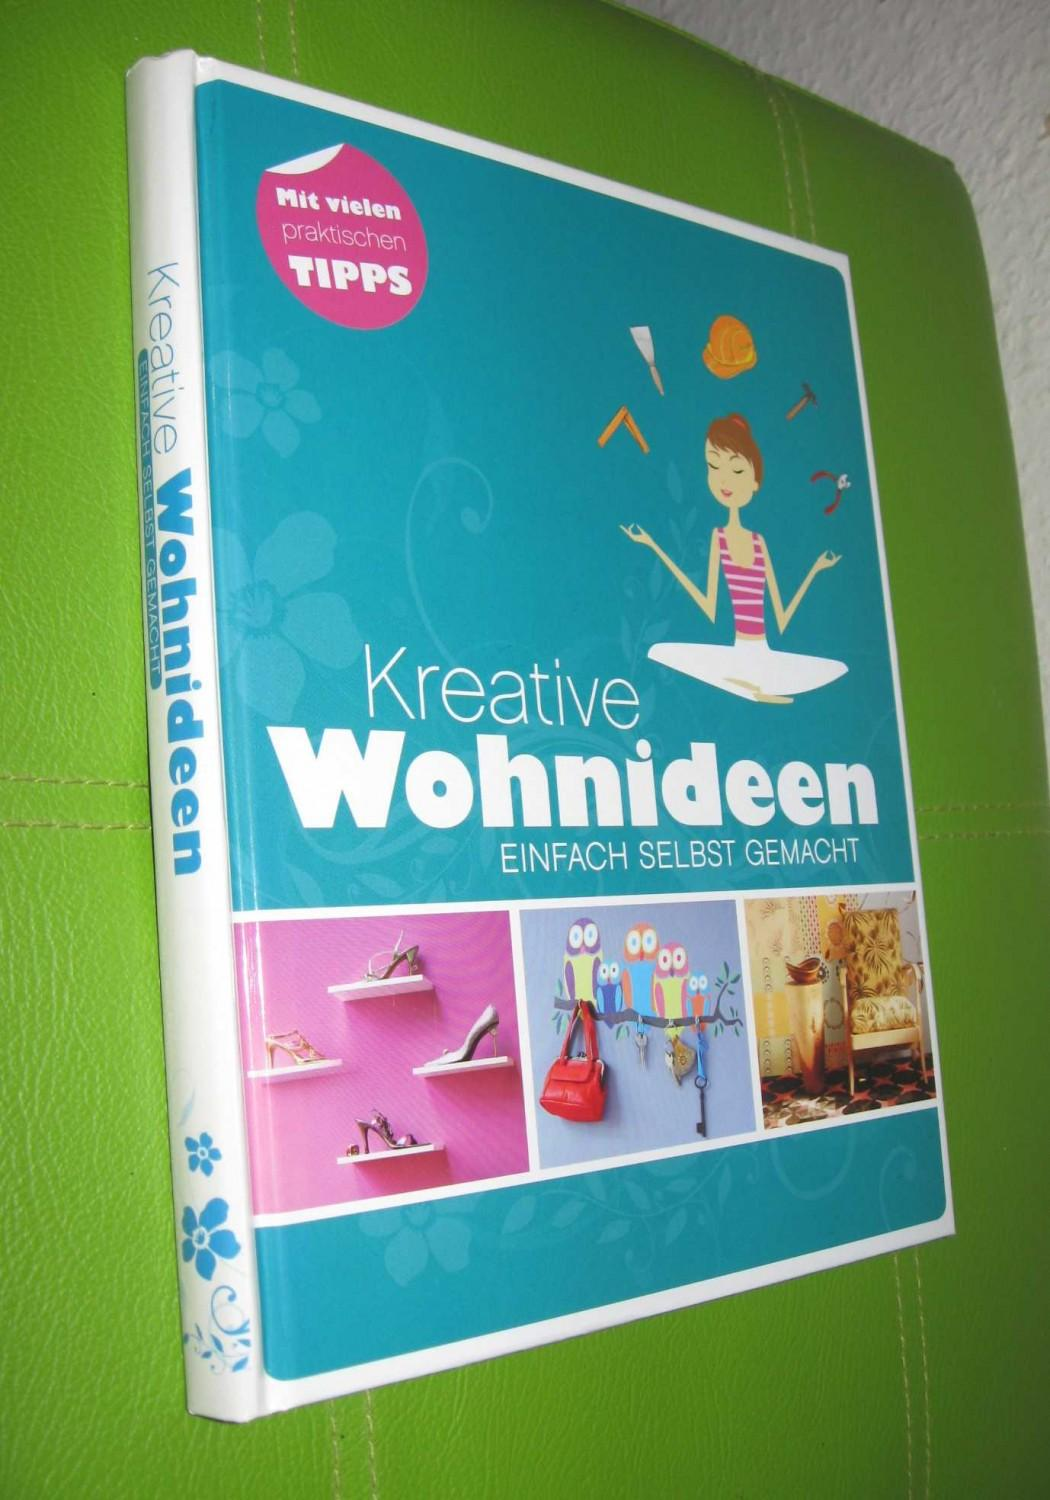 Kreative wohnideen zvab for Kreative wohnideen